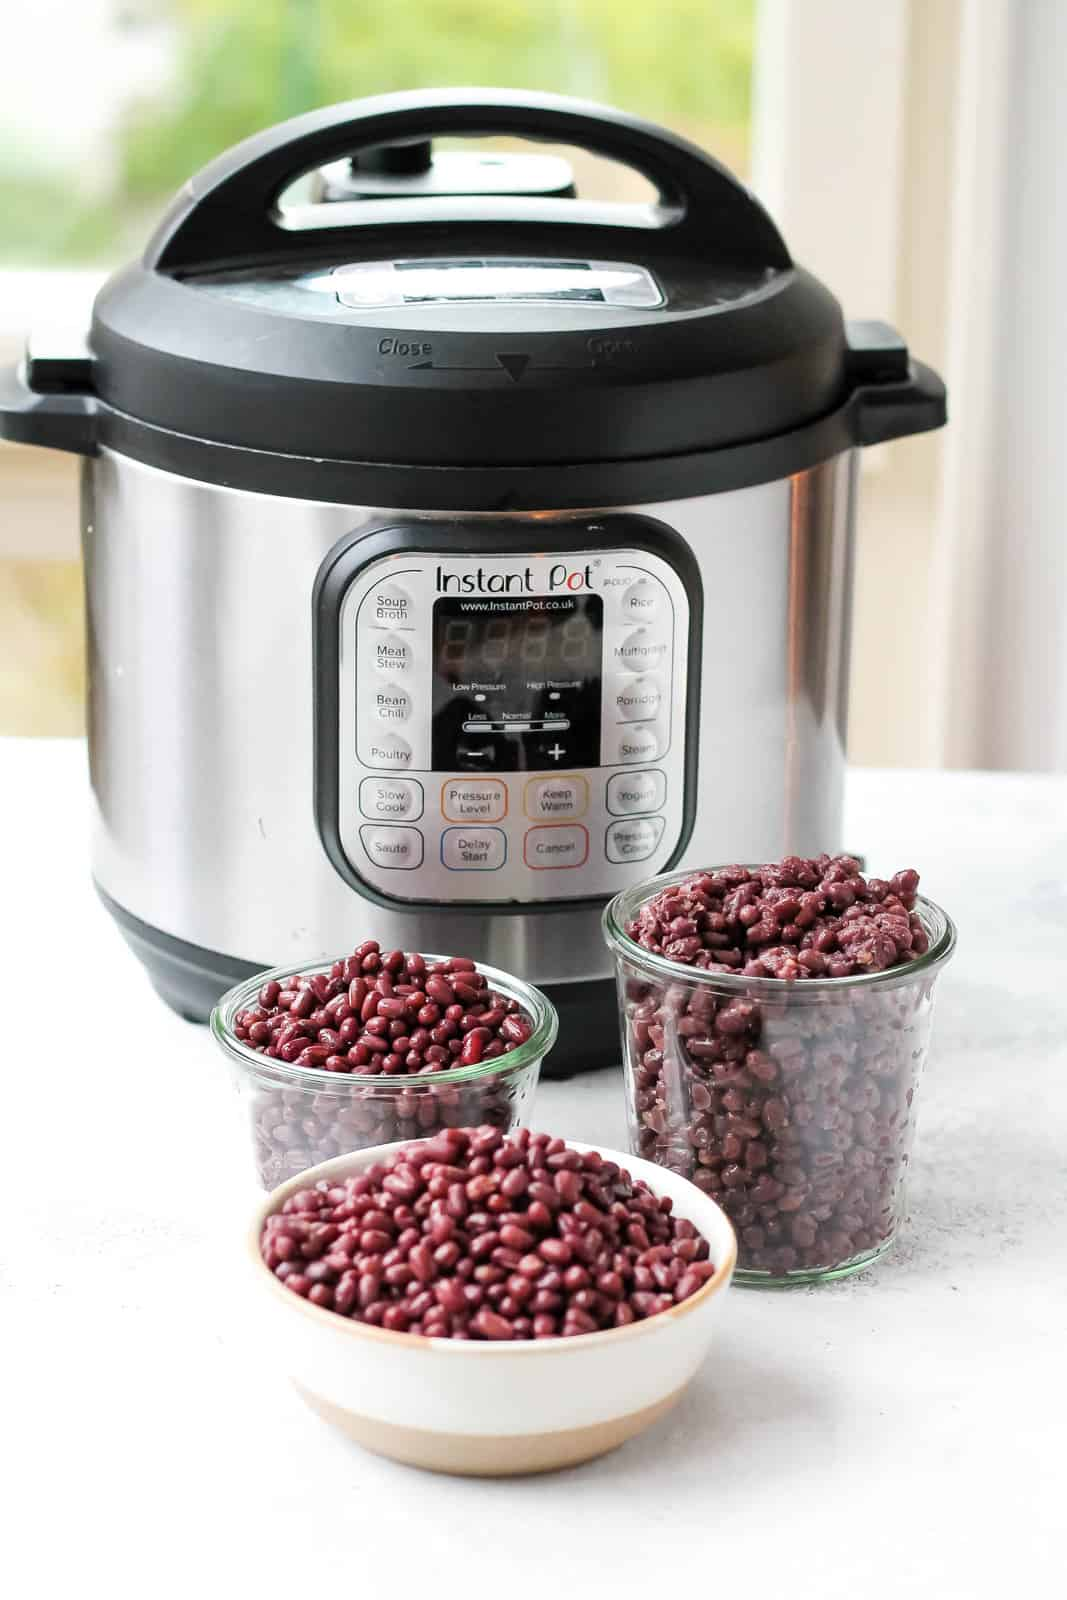 three bowls of adzuki beans in front of an instant pot